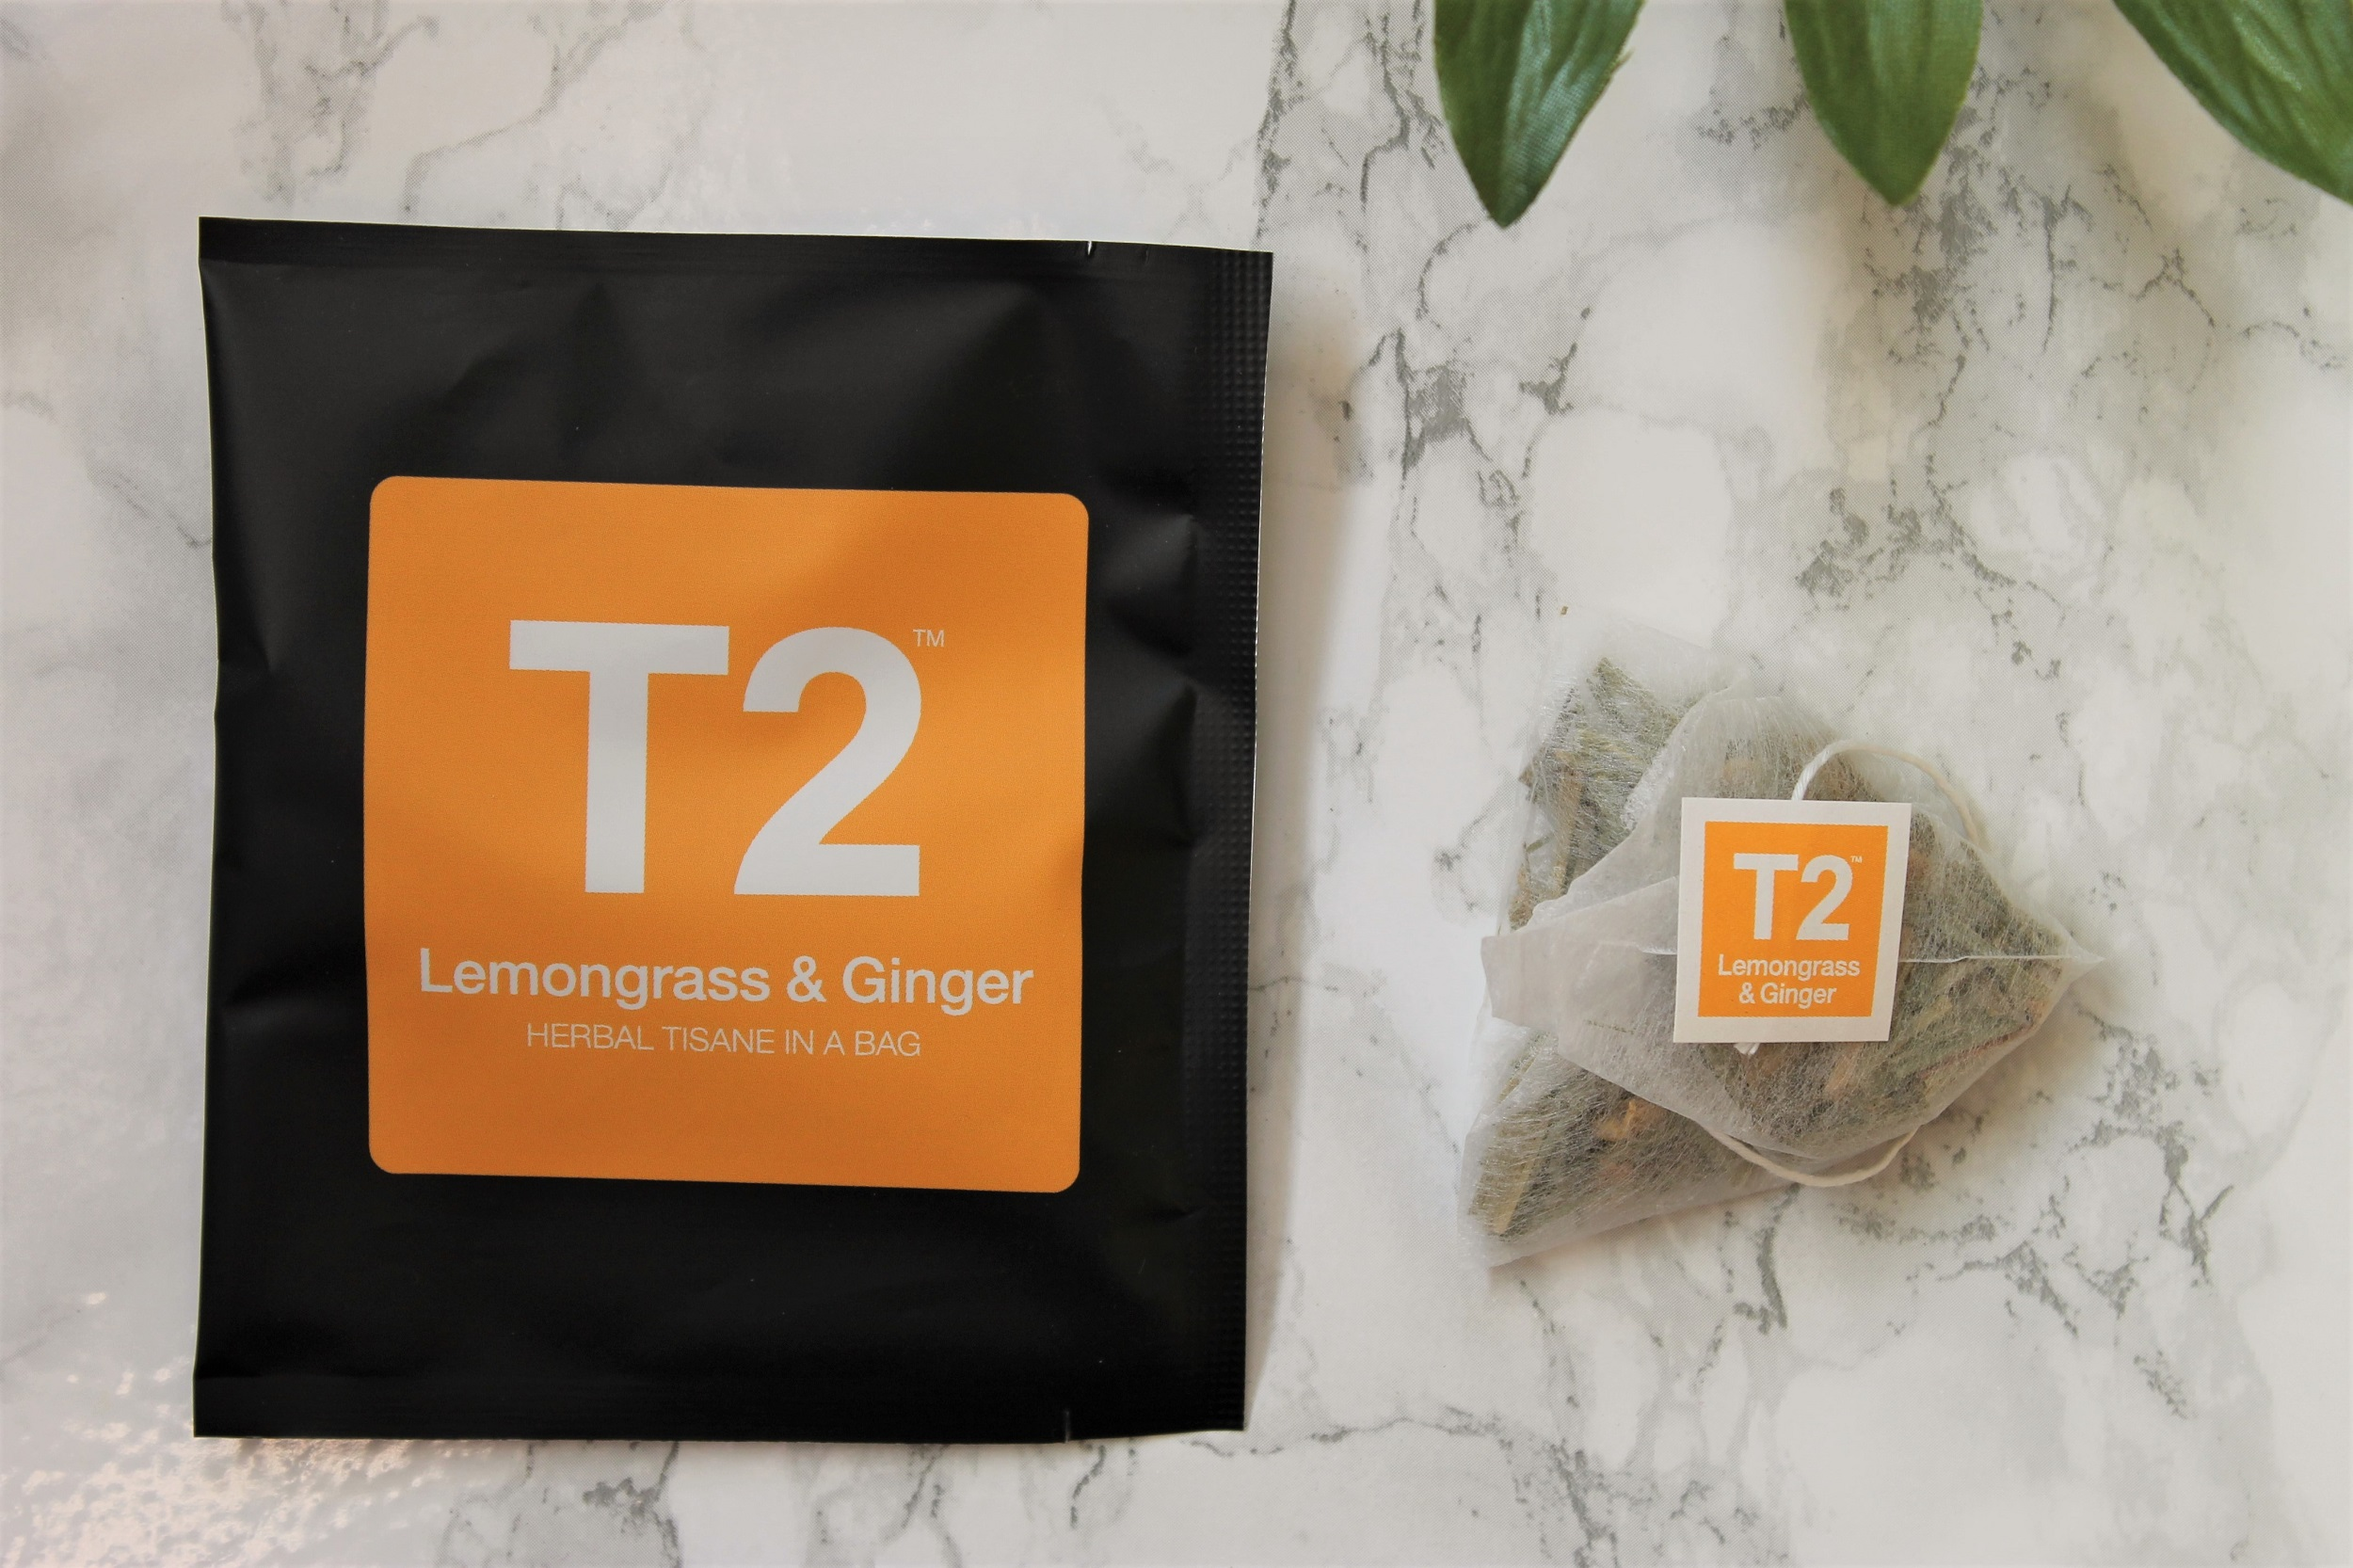 t2 lemongrass herbal tisane